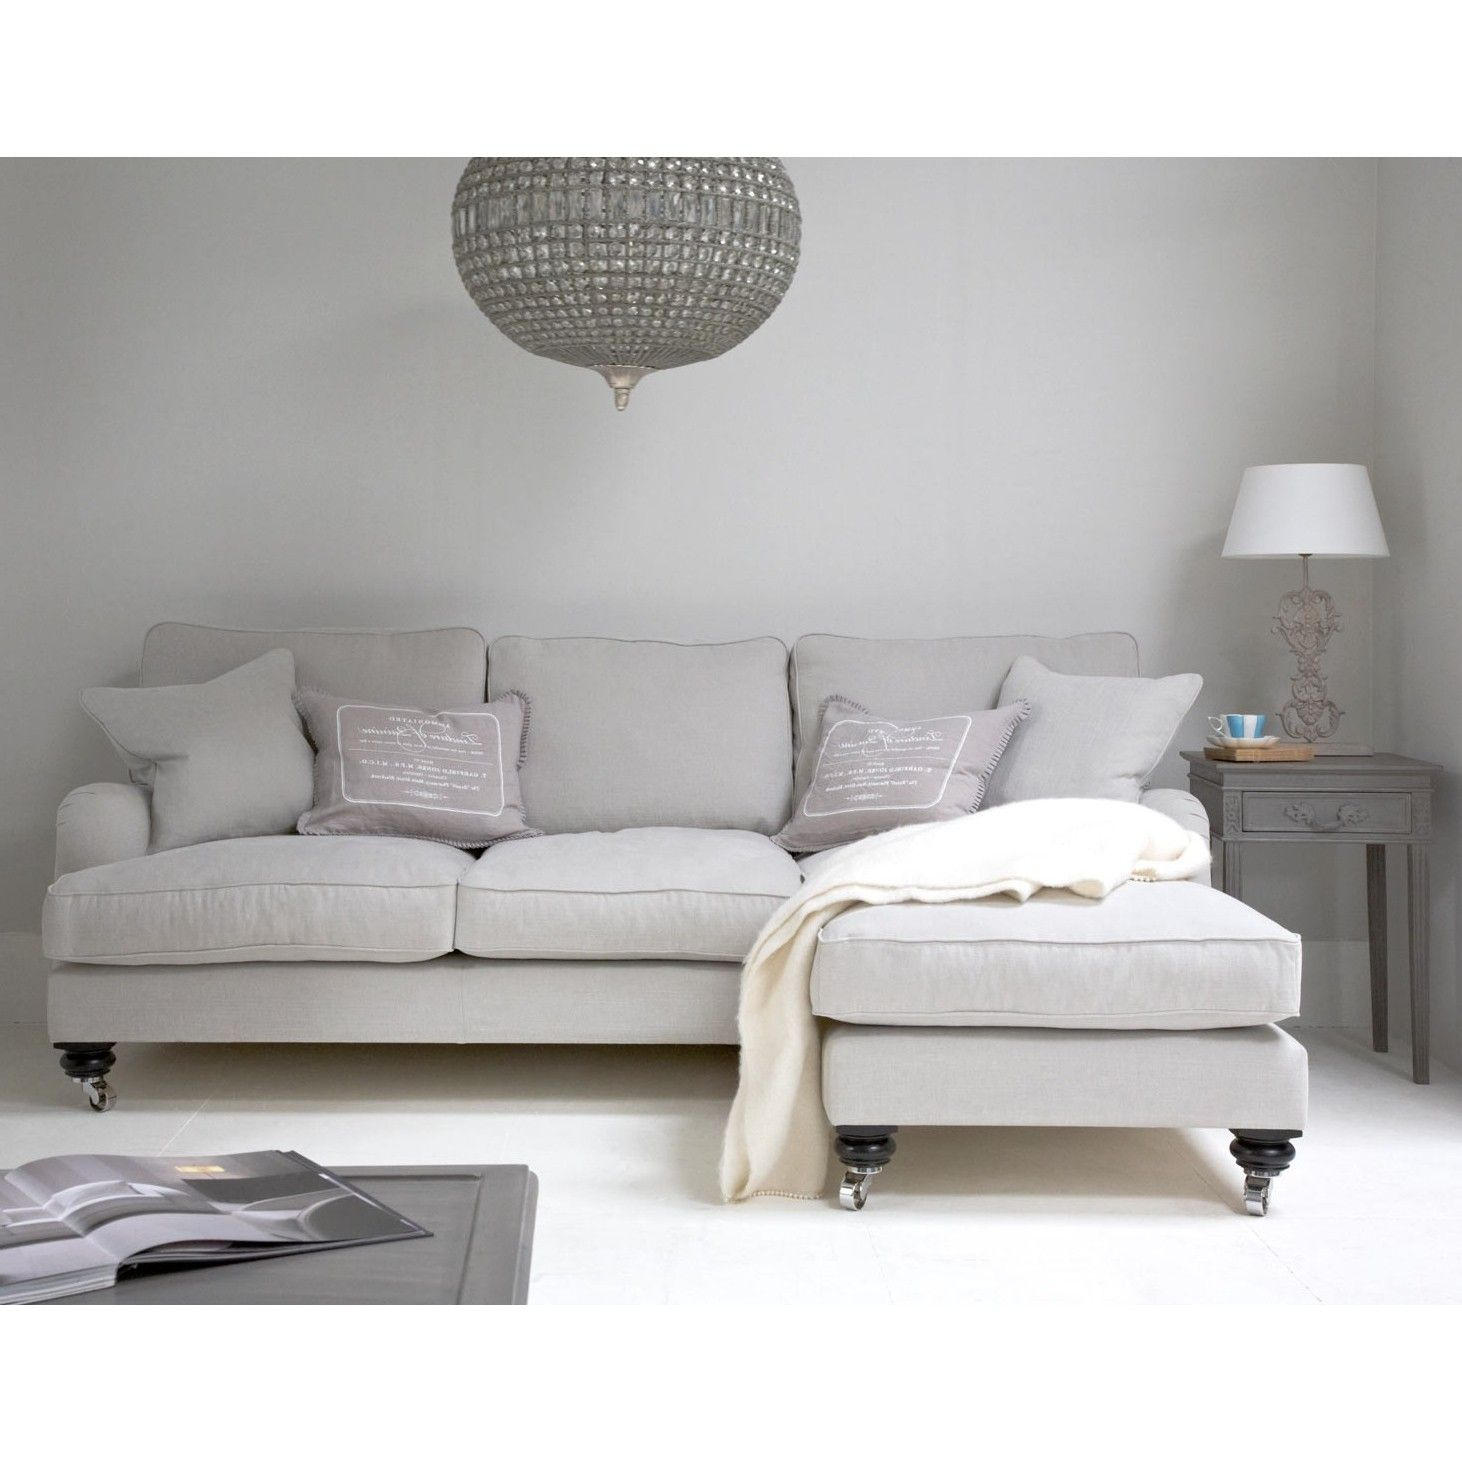 Soft Sumptuous And Snugly The Valentine Is An Old Romantic - Classic interior design romantic twist